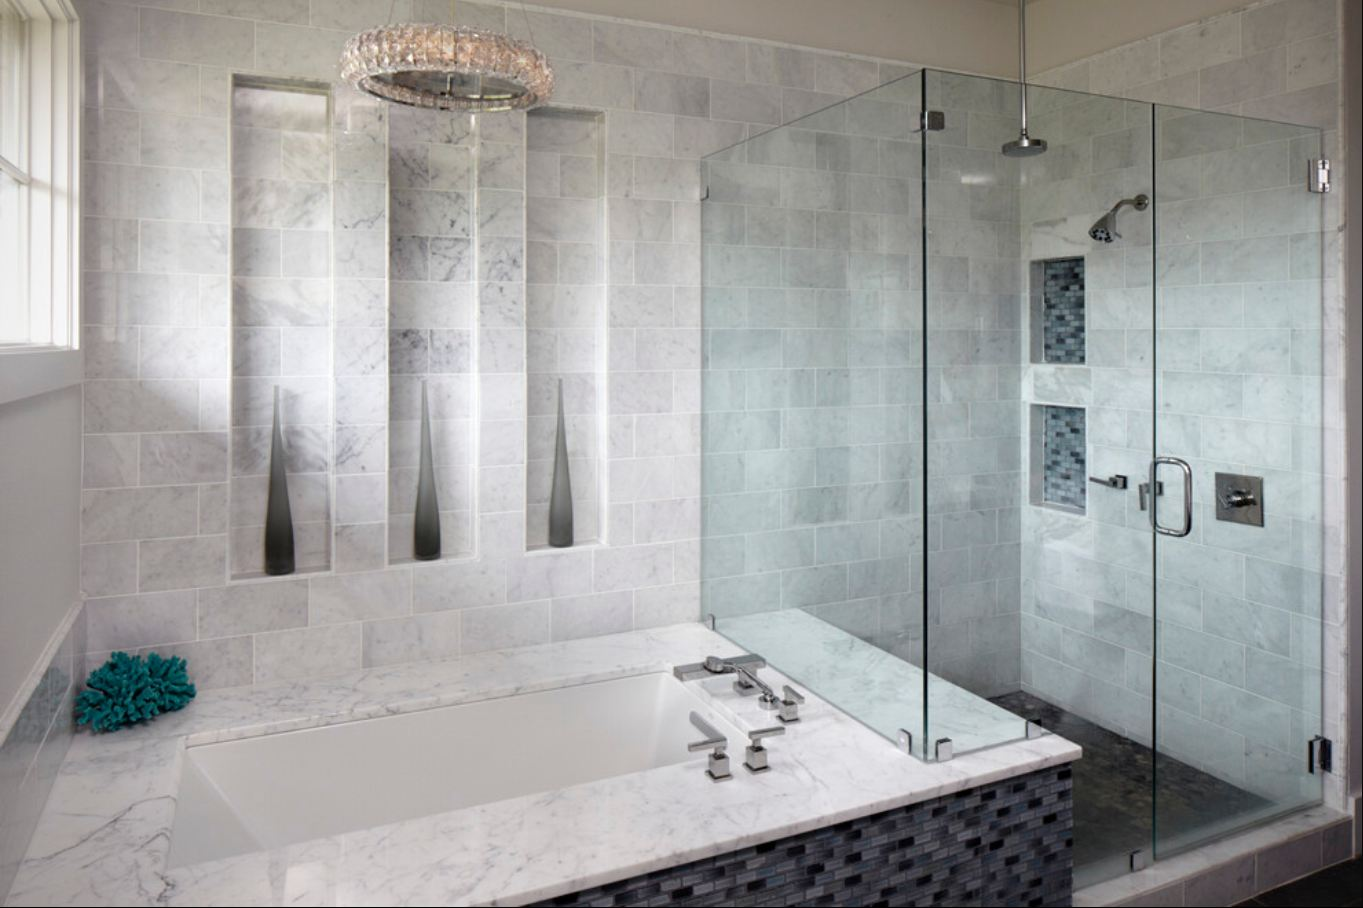 antique-marble-bathroom-tile-with-bianco-carrara-marble-in-6x12-with-glass-tile-for-antique-bathroom